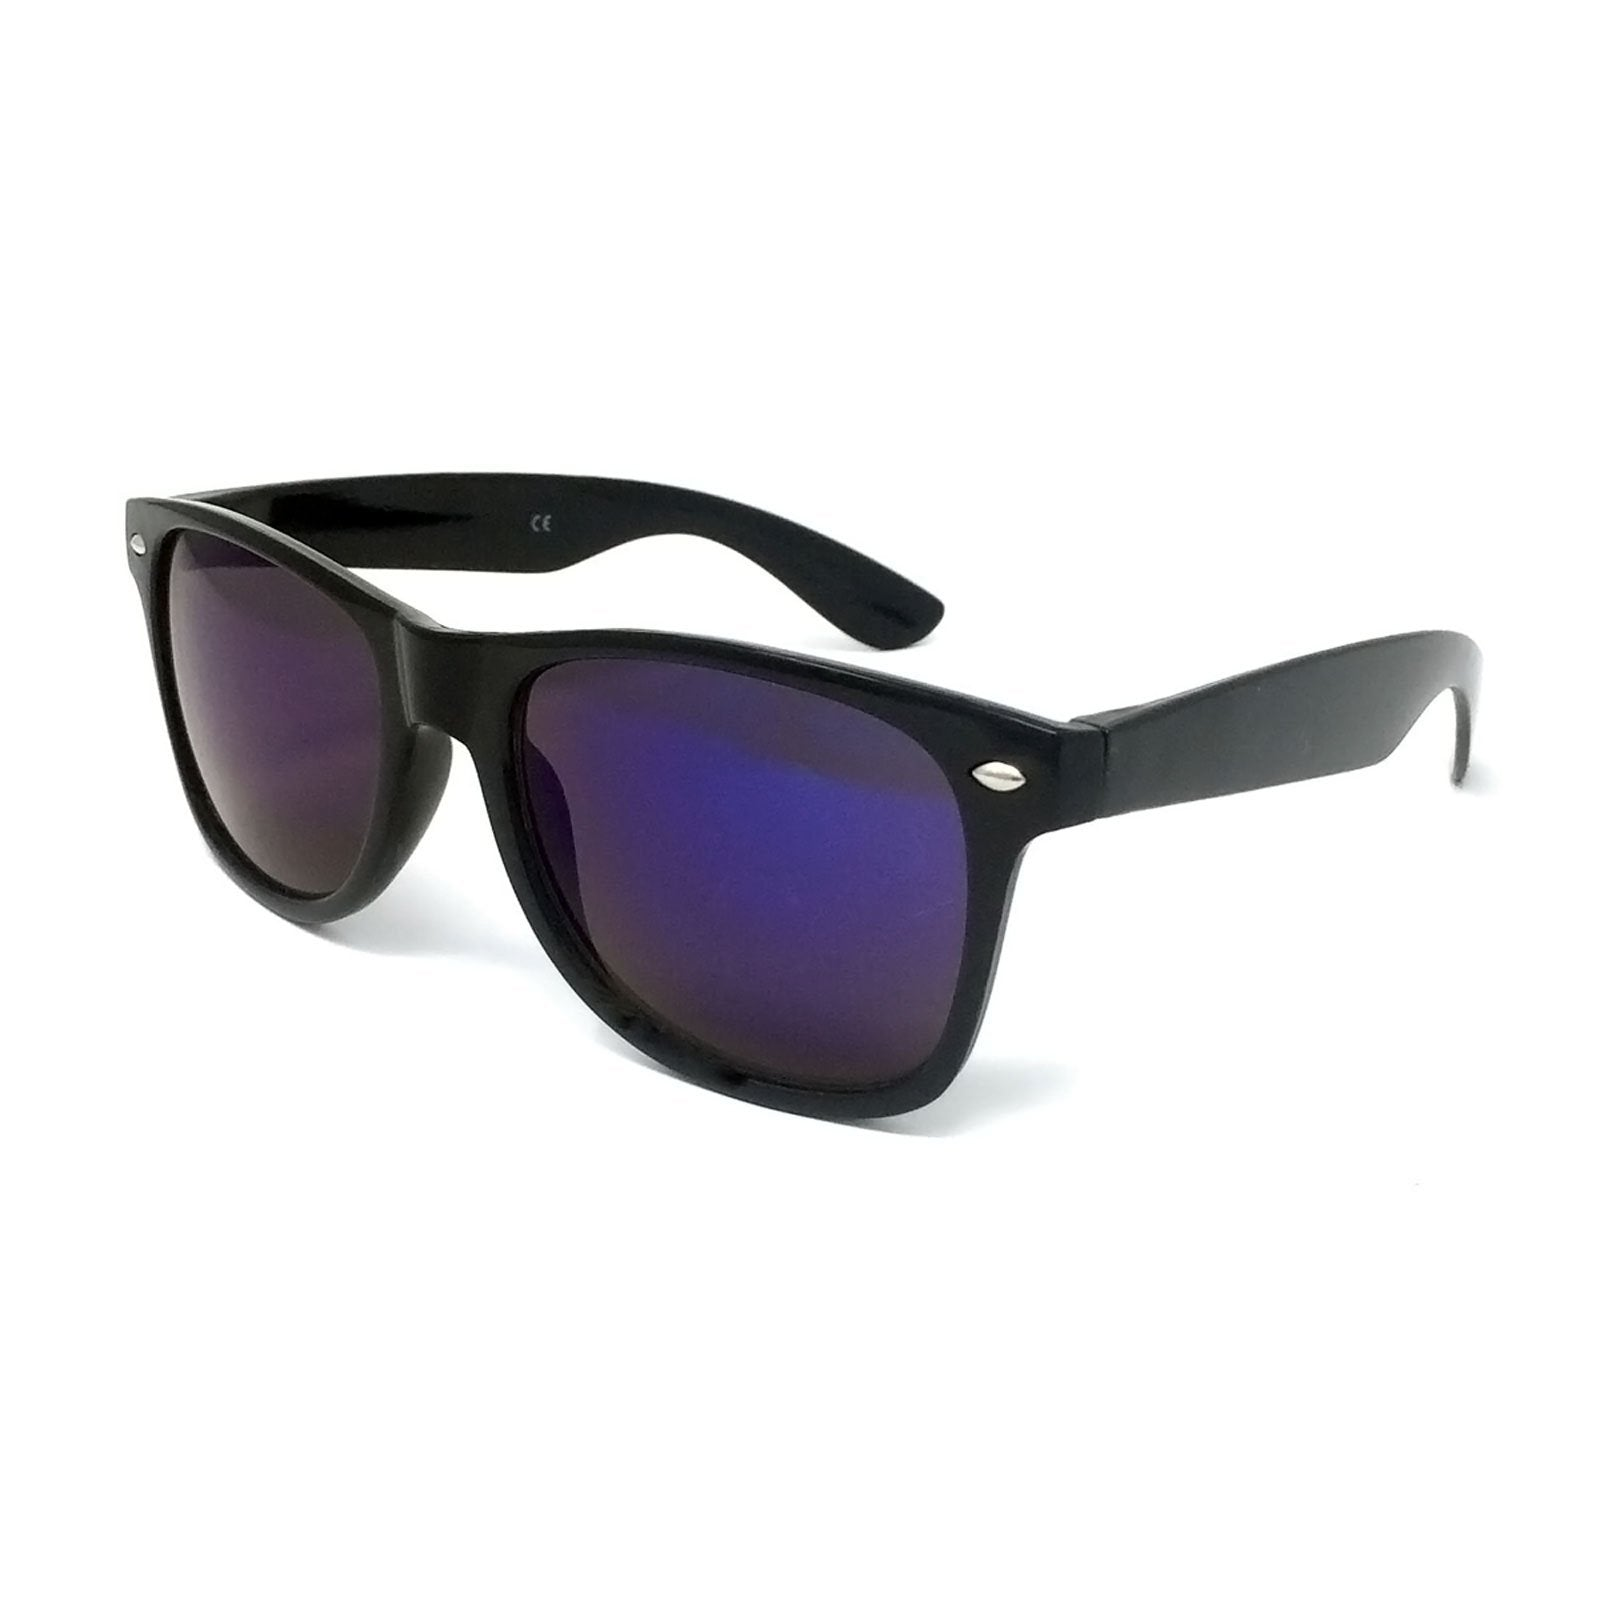 Wholesale Classic Sunglasses - Black Frame, Blue Mirrored Lens